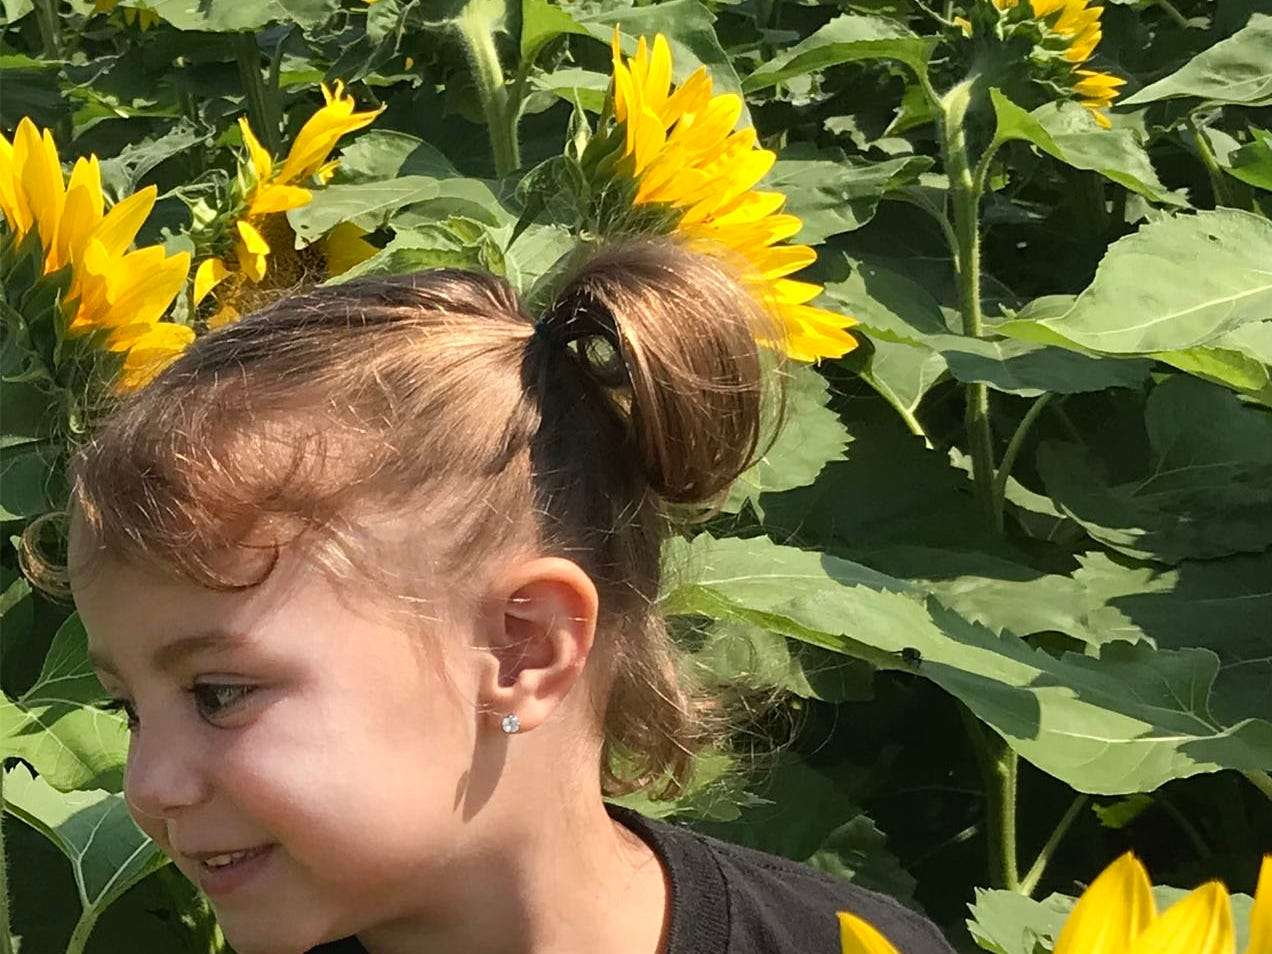 Three-year-old Kenley Welch checks out sunflowers on Tuesday, August 28, 2018. A sunflower field is in bloom south of Chambersburg in Antrim Township. For several years, Lesher Poultry Farm has planted the sunflowers for visitors to enjoy. This year's location is at Marion Road (near Talhelm Rd.), off Interstate 81, Exit 10.